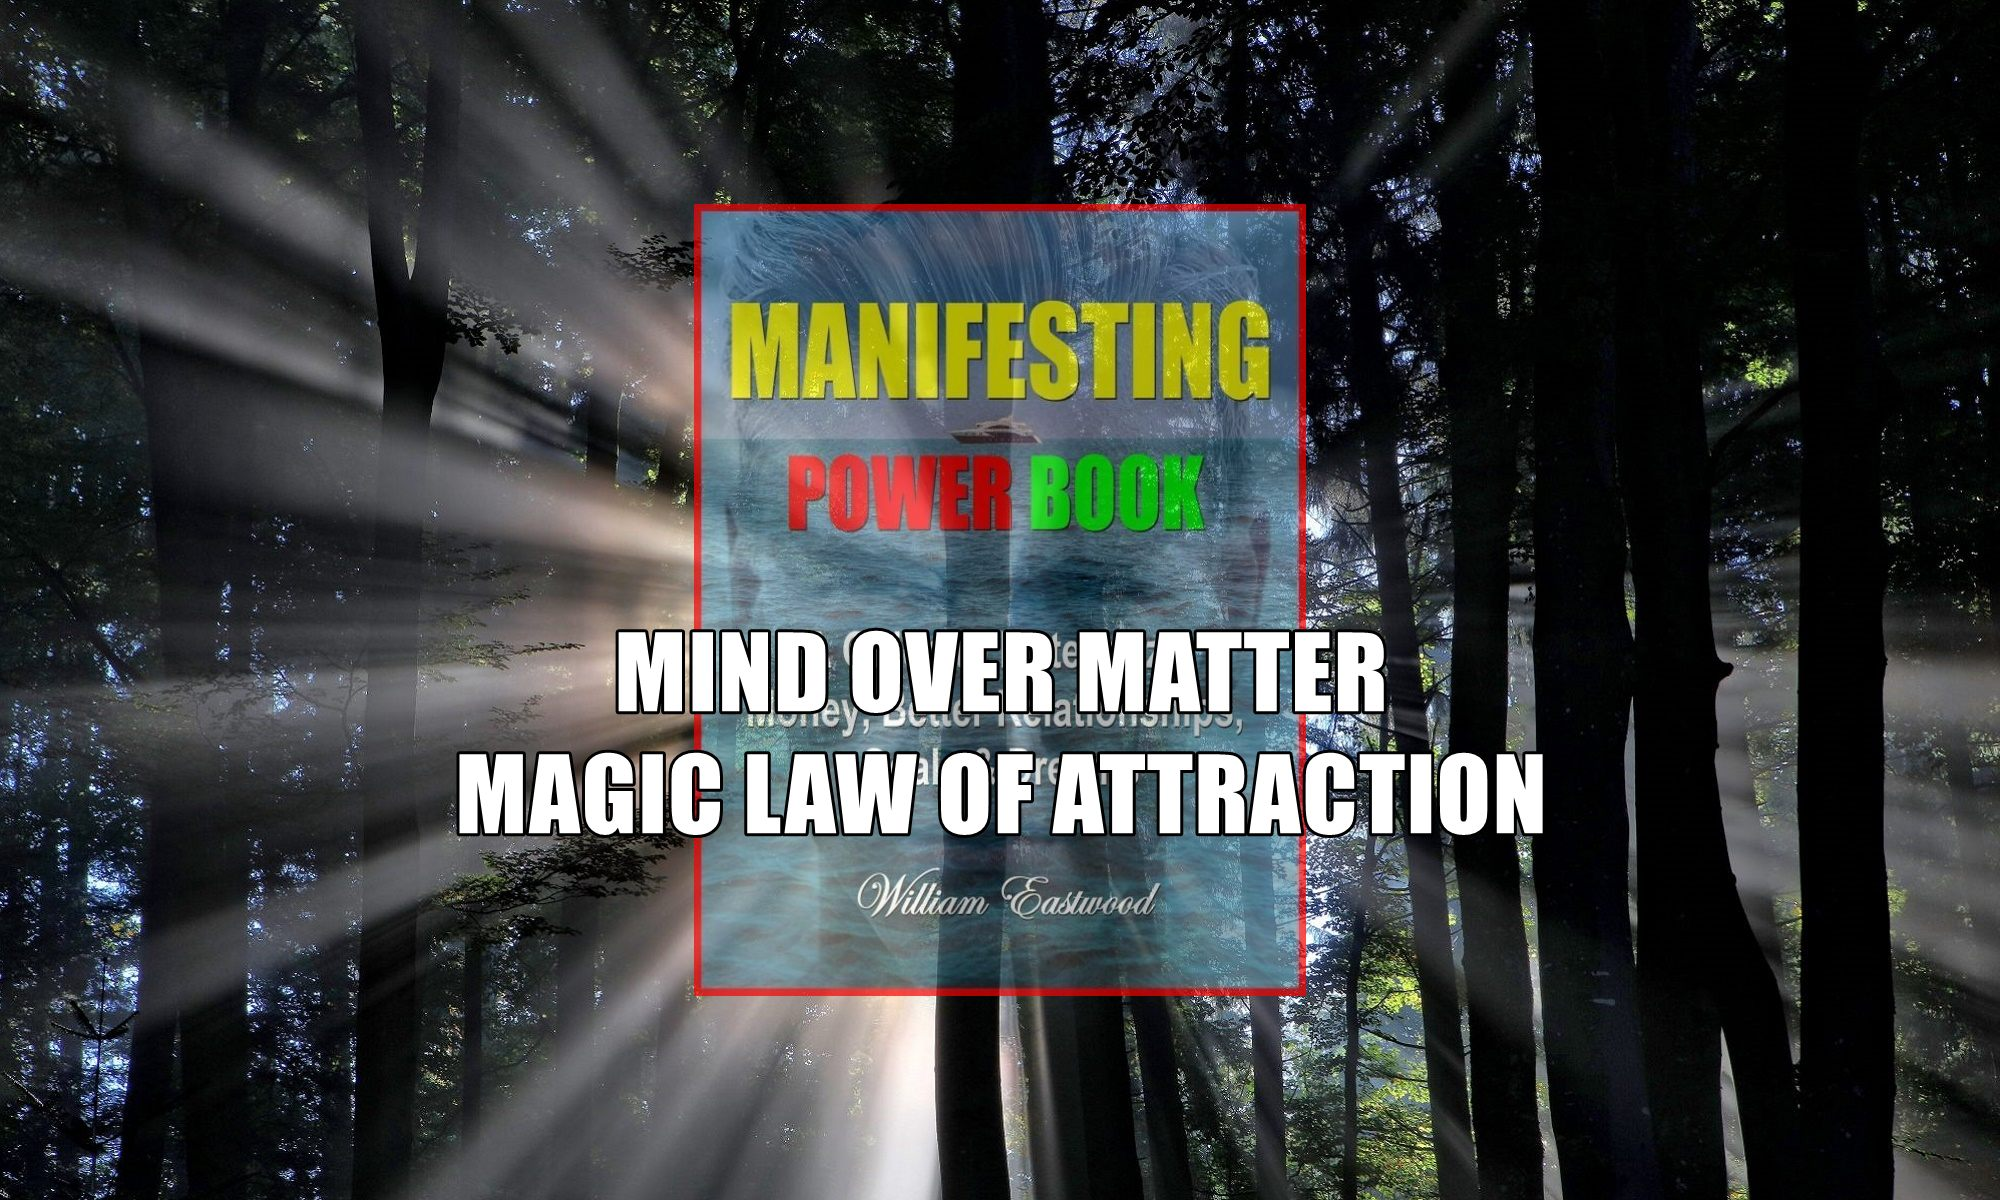 Magic light in forest depicts magic law of attraction & mind over matter